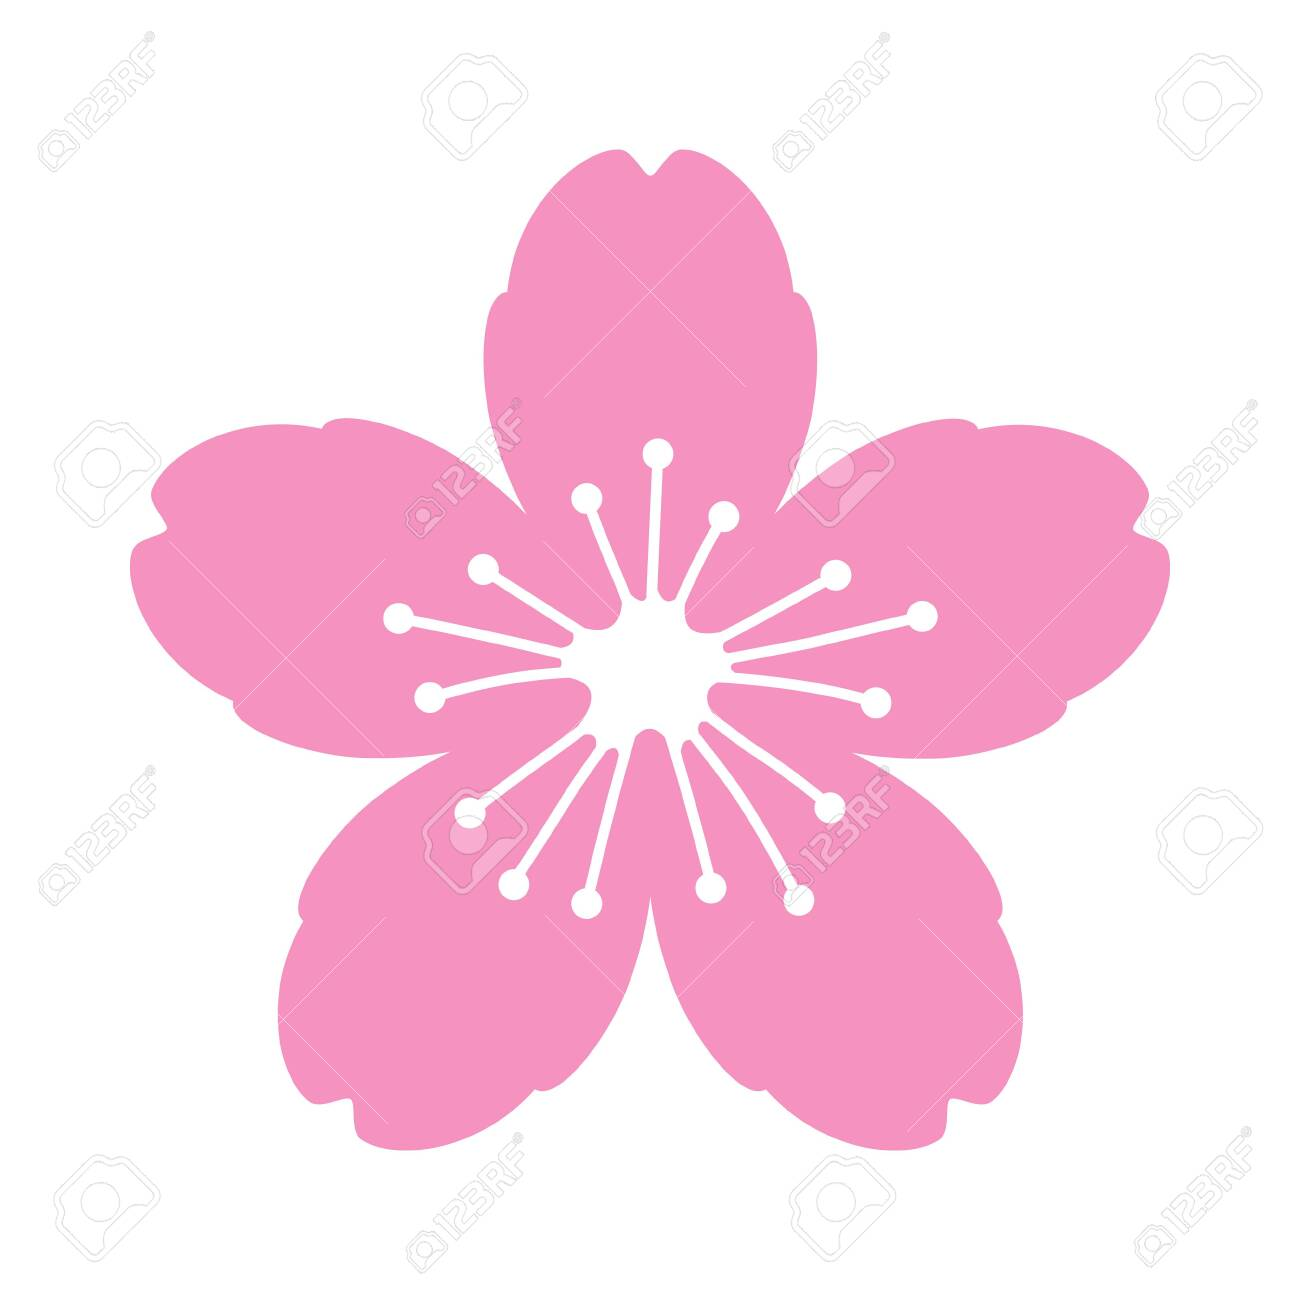 Cherry Blossom Flower Or Sakura Flat Vector Pink Icon For Apps Royalty Free Cliparts Vectors And Stock Illustration Image 121656246